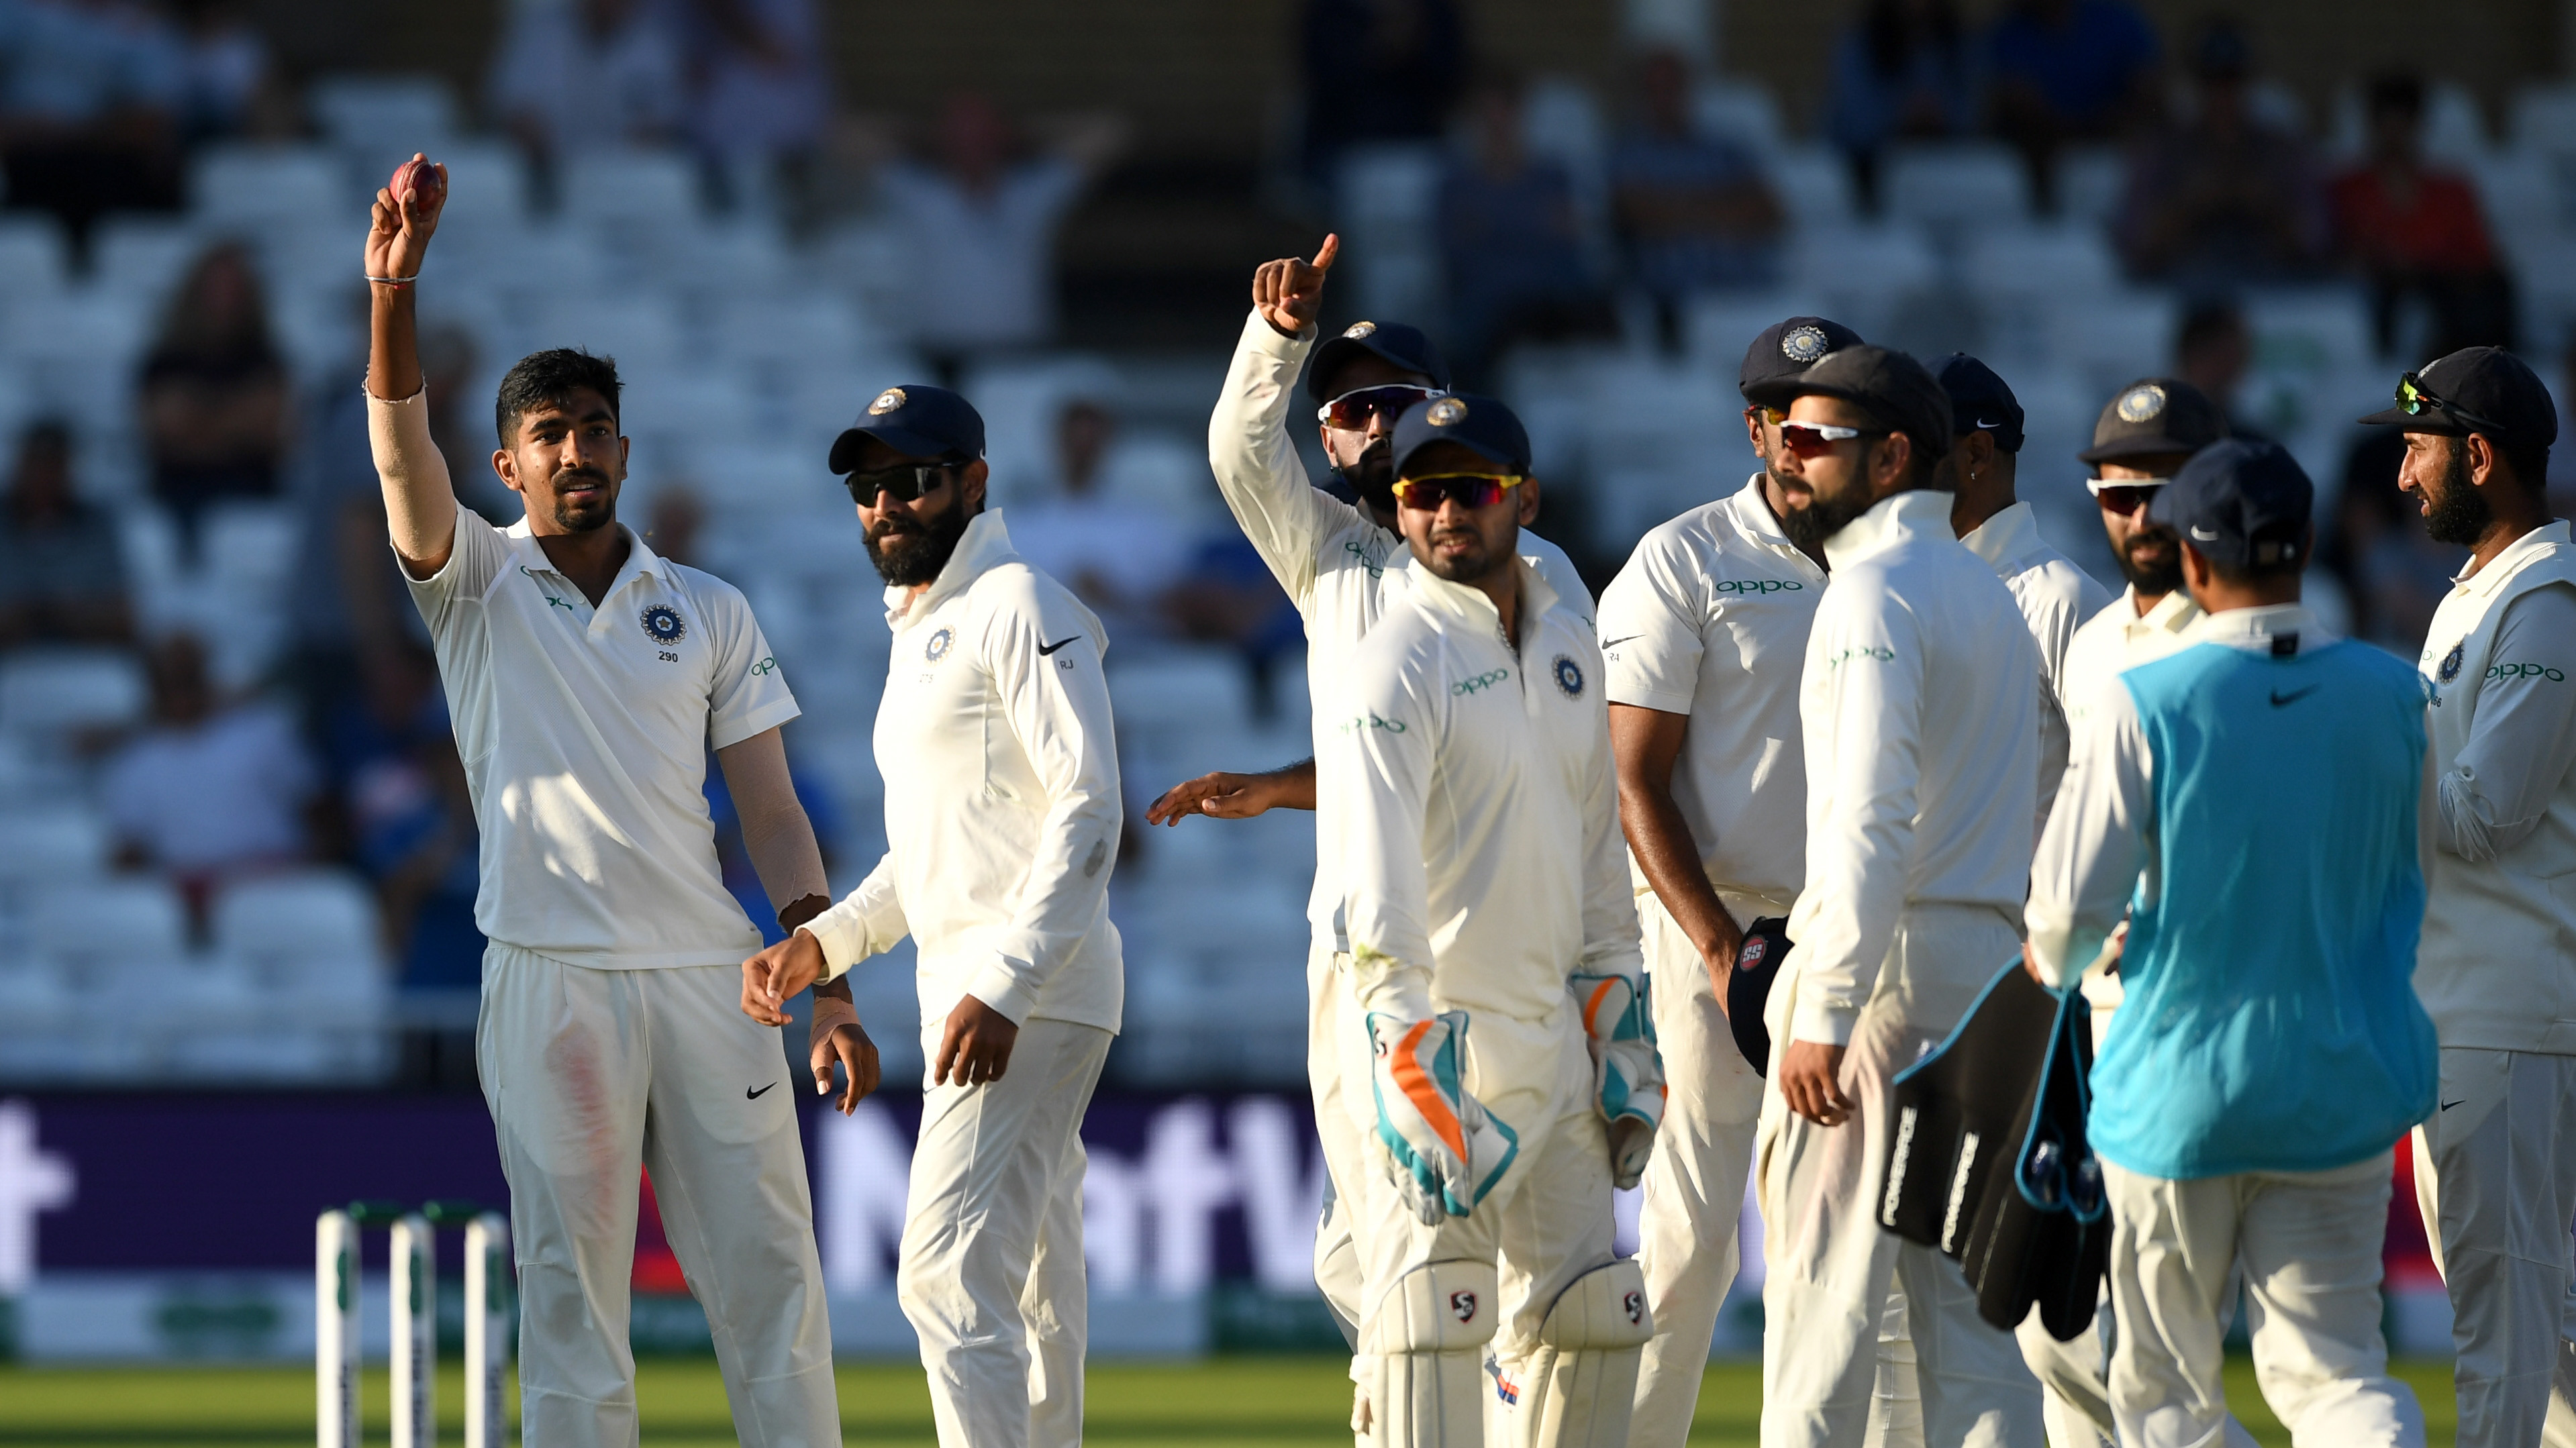 ENG vs IND 2018: In Test cricket, it's all about patience and consistency, says Jasprit Bumrah